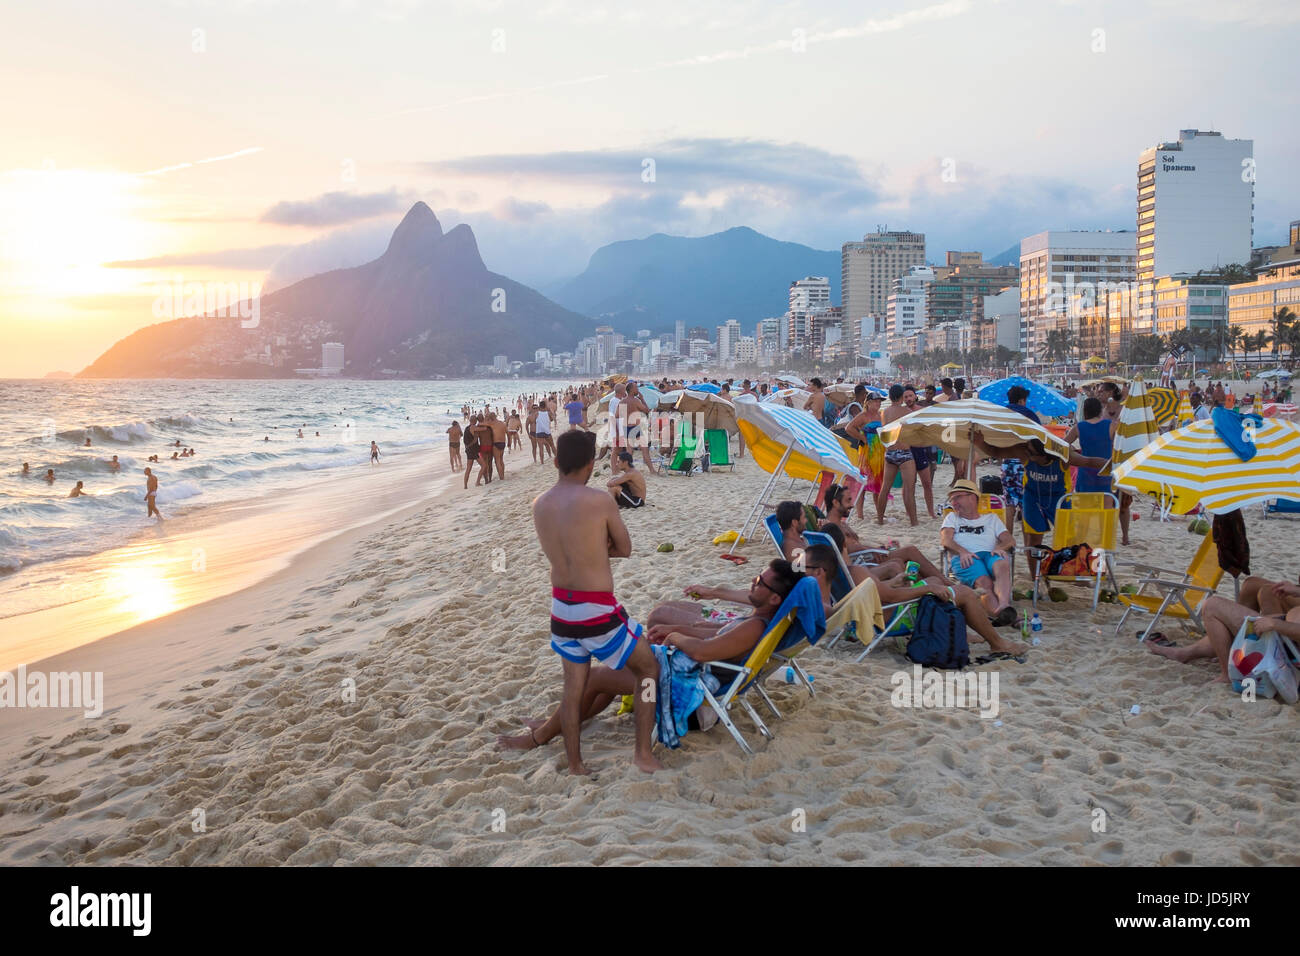 RIO DE JANEIRO - JANUARY 27, 2017: Beachgoers on Ipanema Beach sit back to take in the sunset behind Two Brothers - Stock Image